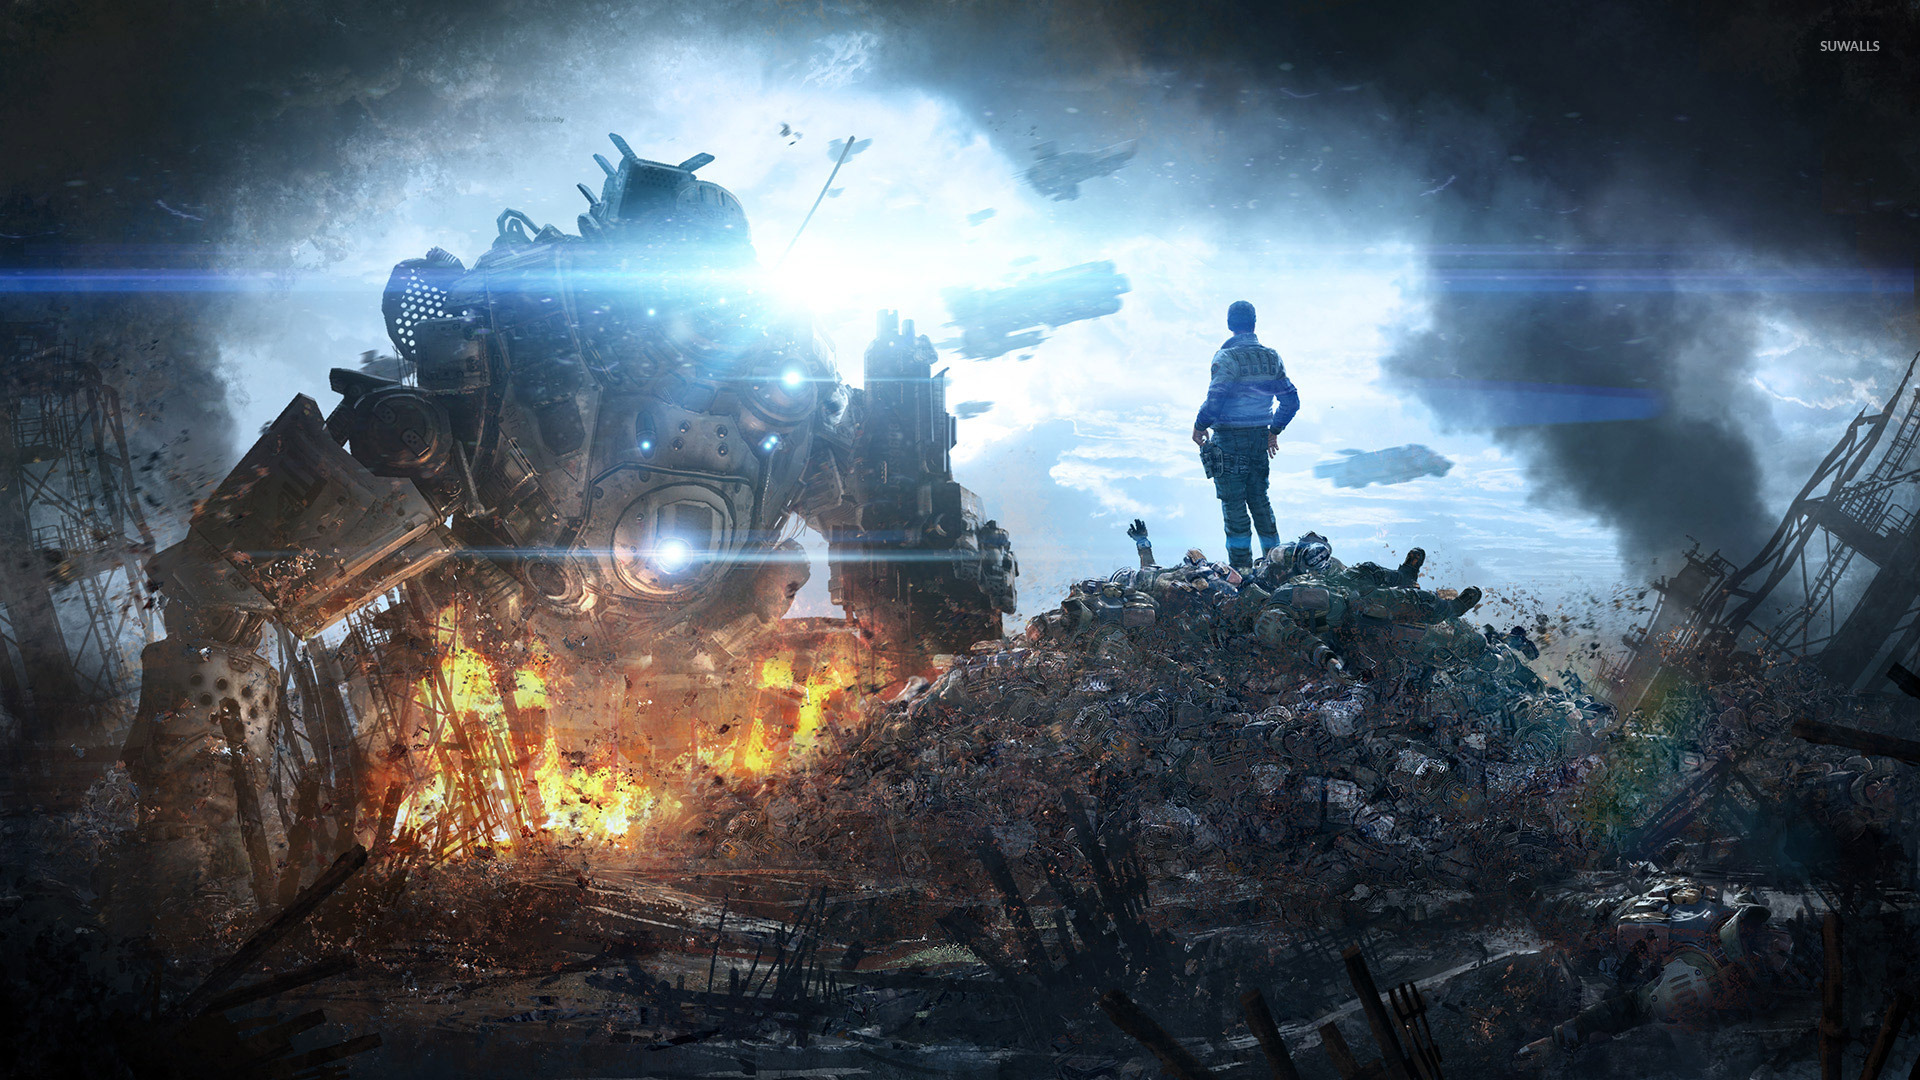 Titanfall 2 Wallpapers Images - Titanfall 2 Concept Art , HD Wallpaper & Backgrounds